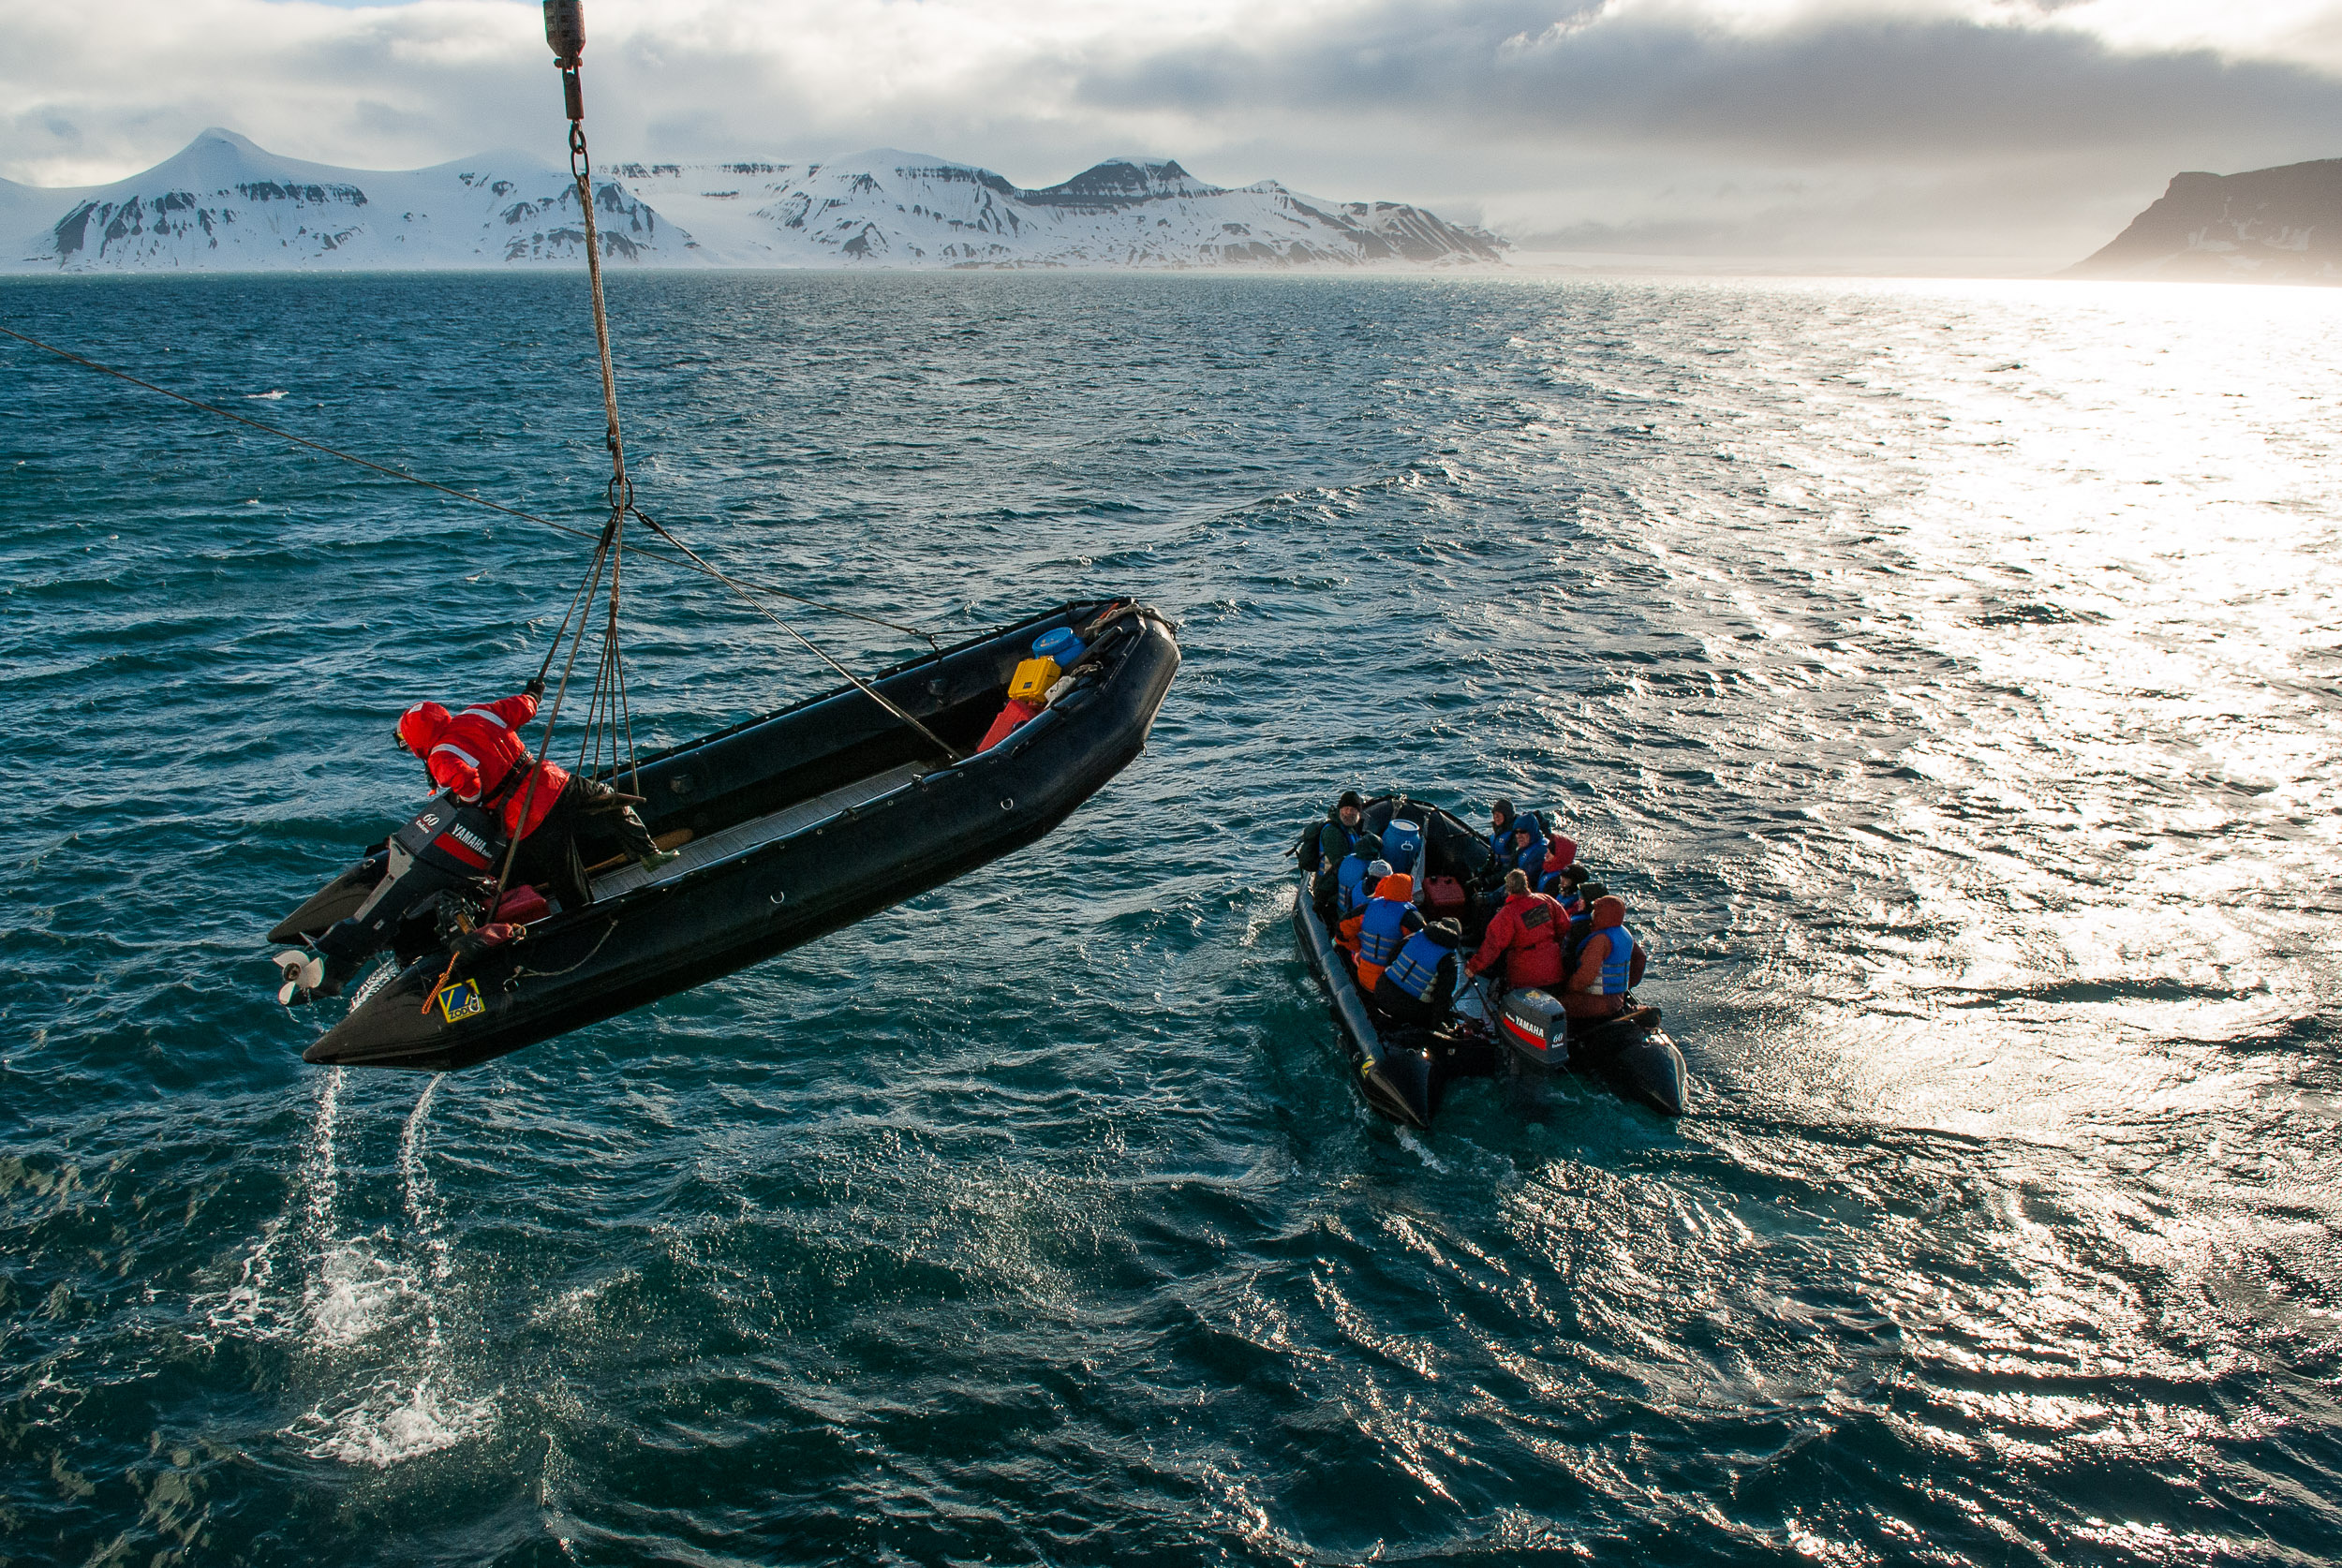 A polar guide and his inflatable motorized boat, known as a zodiac, being lifted onto the deck of the expedition cruise ship the  Akademik Sergey Vavilov,  Hambergbukta, Torell Land, Spitsbergen/Svalbard.